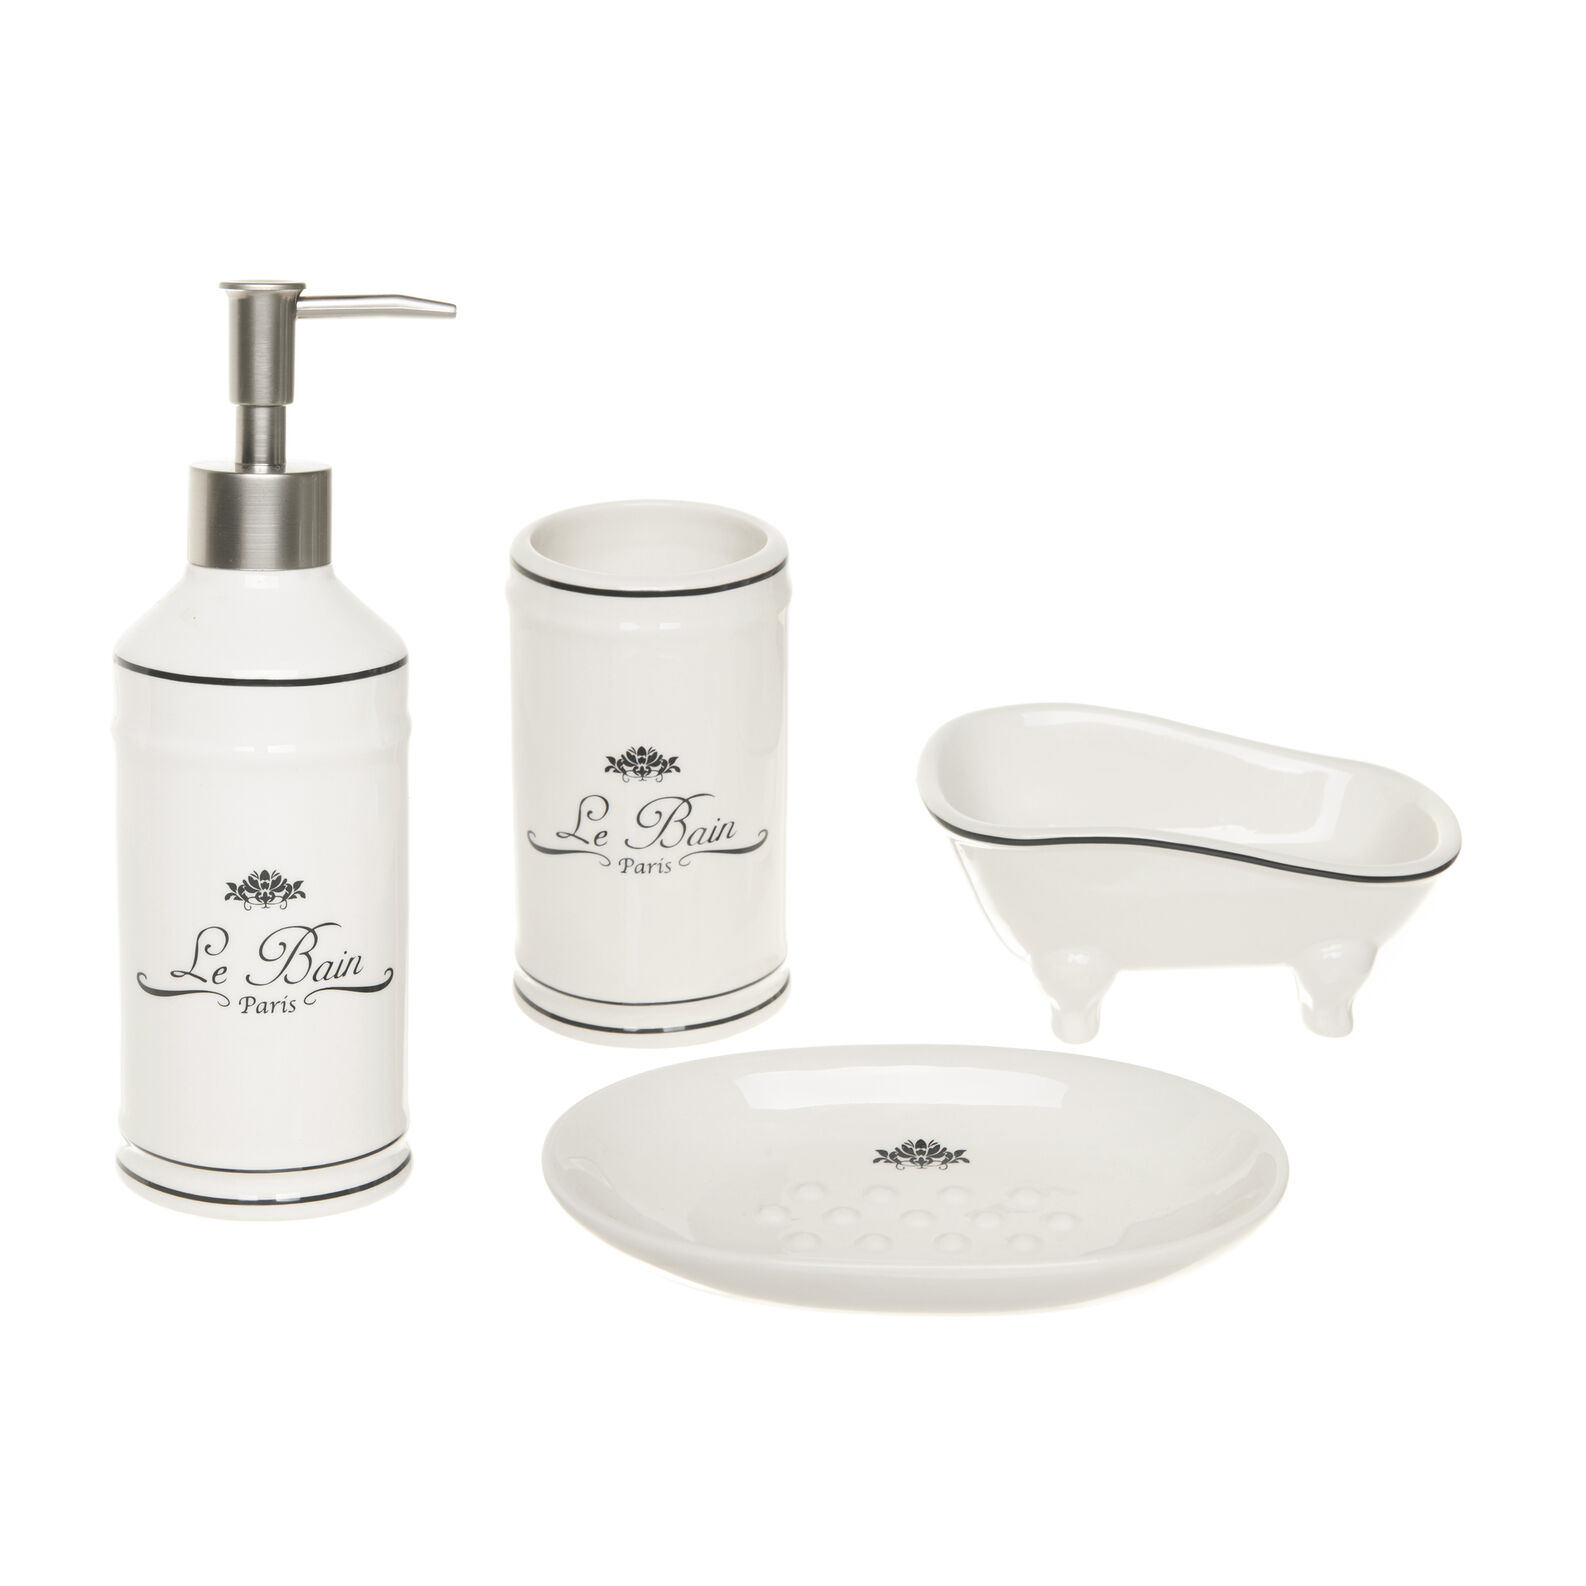 Vintage ceramic bathroom set